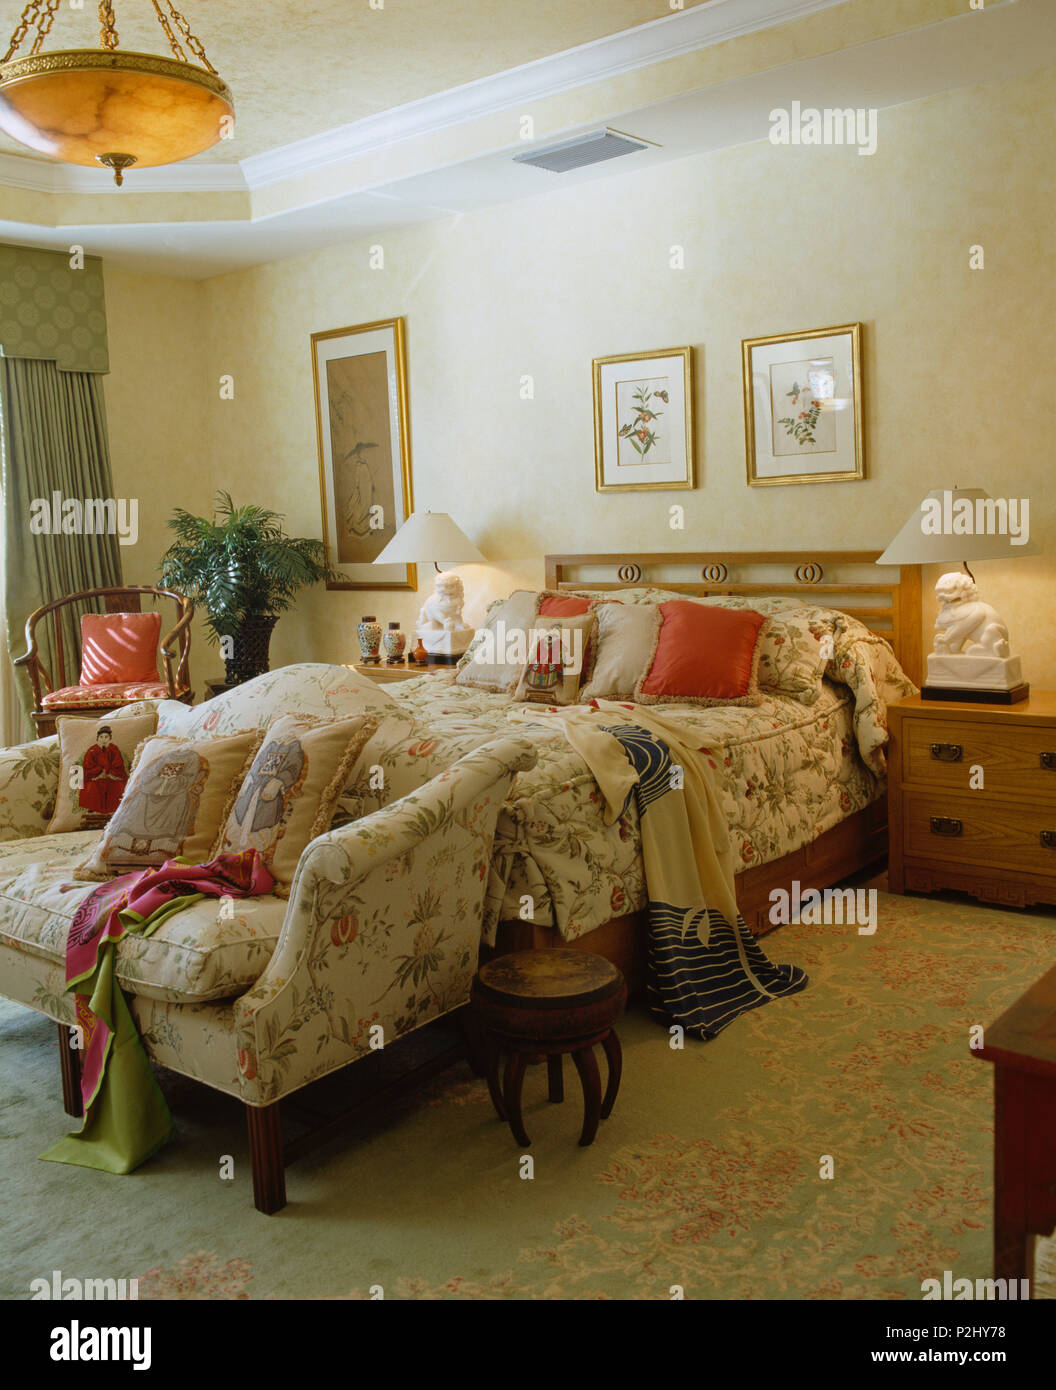 Sofa at foot of bed with quilted bed-cover in a comfortable